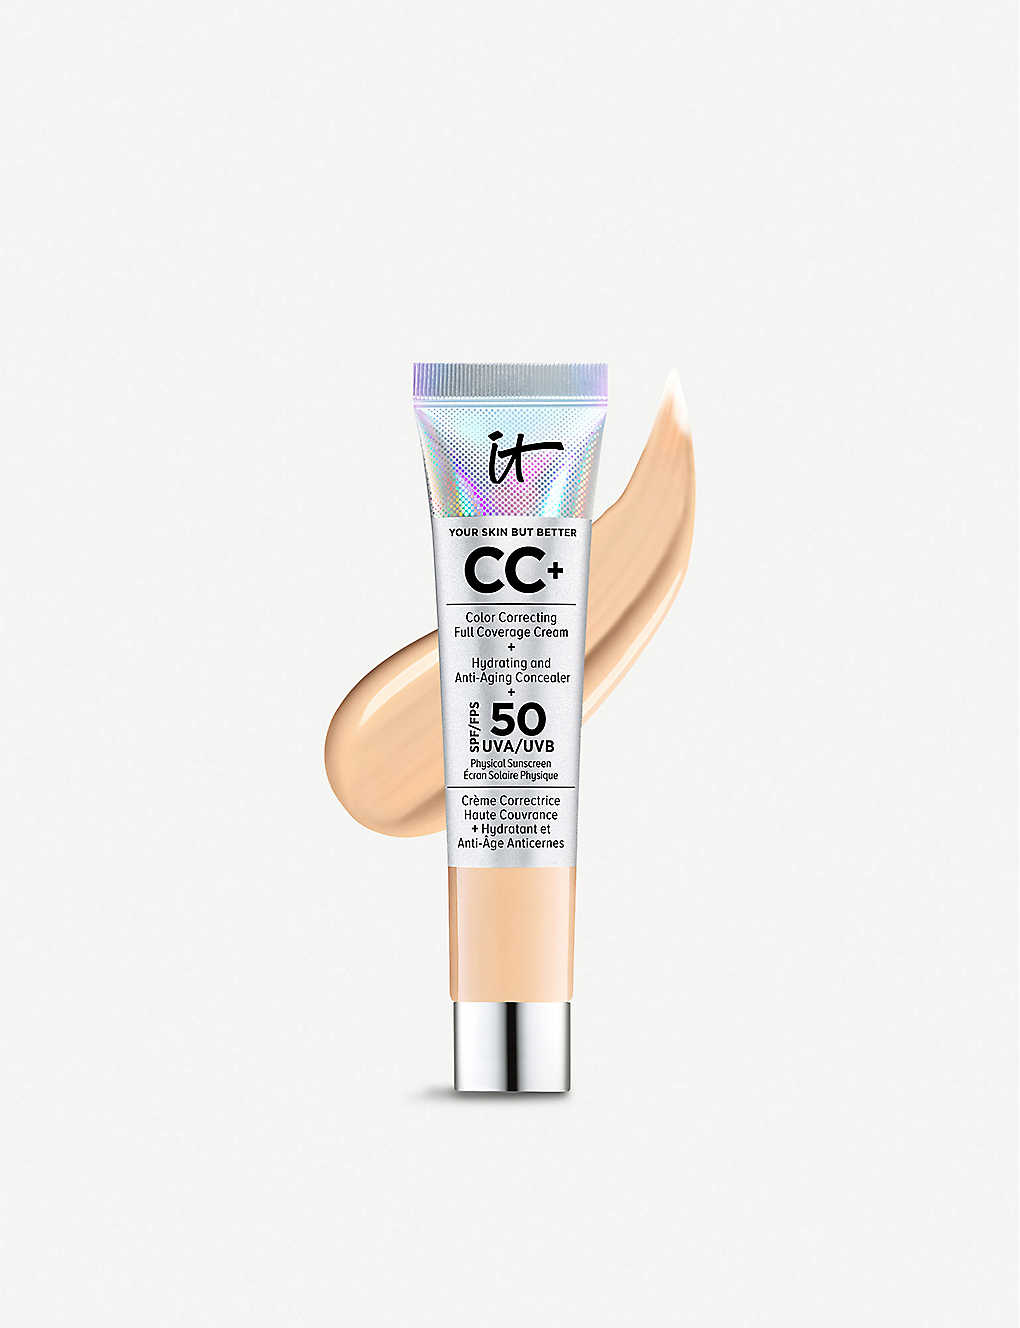 IT COSMETICS:Your Skin But Better CC+ 乳霜 SPF 50+ 12 毫升